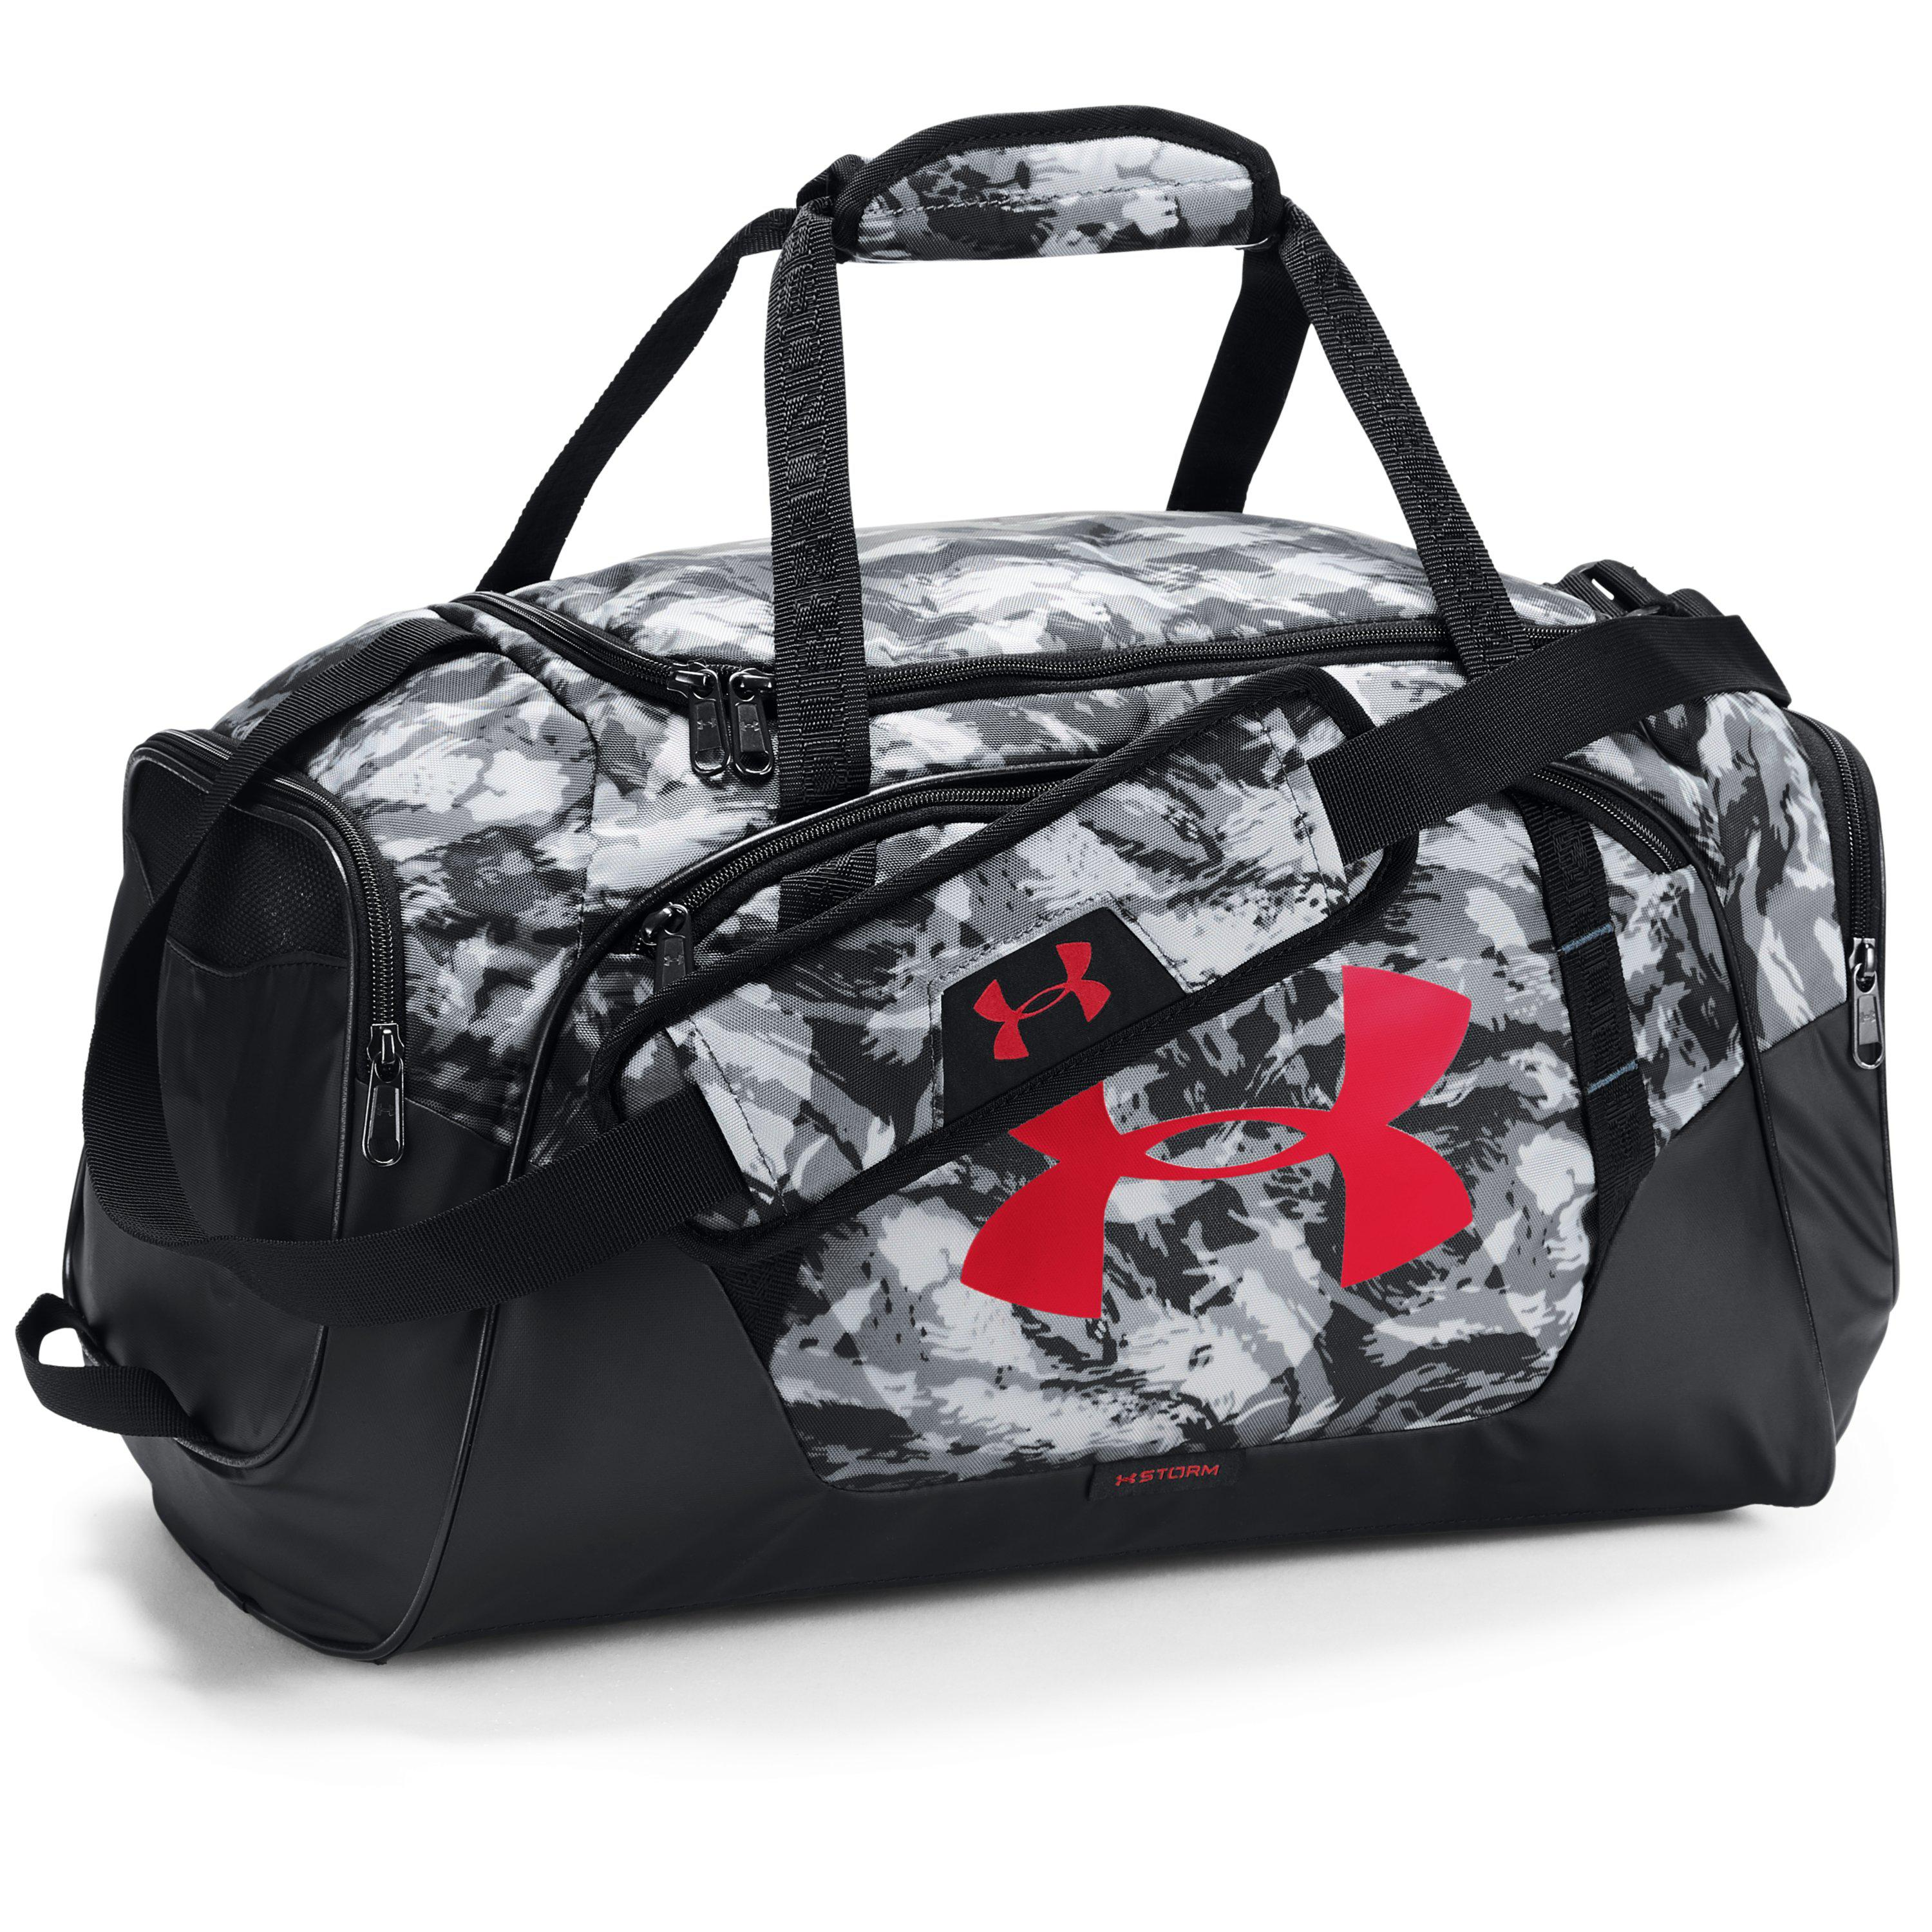 7938e81e4753 Lyst - Under Armour Undeniable 3.0 Small Duffle Bag in Black for Men